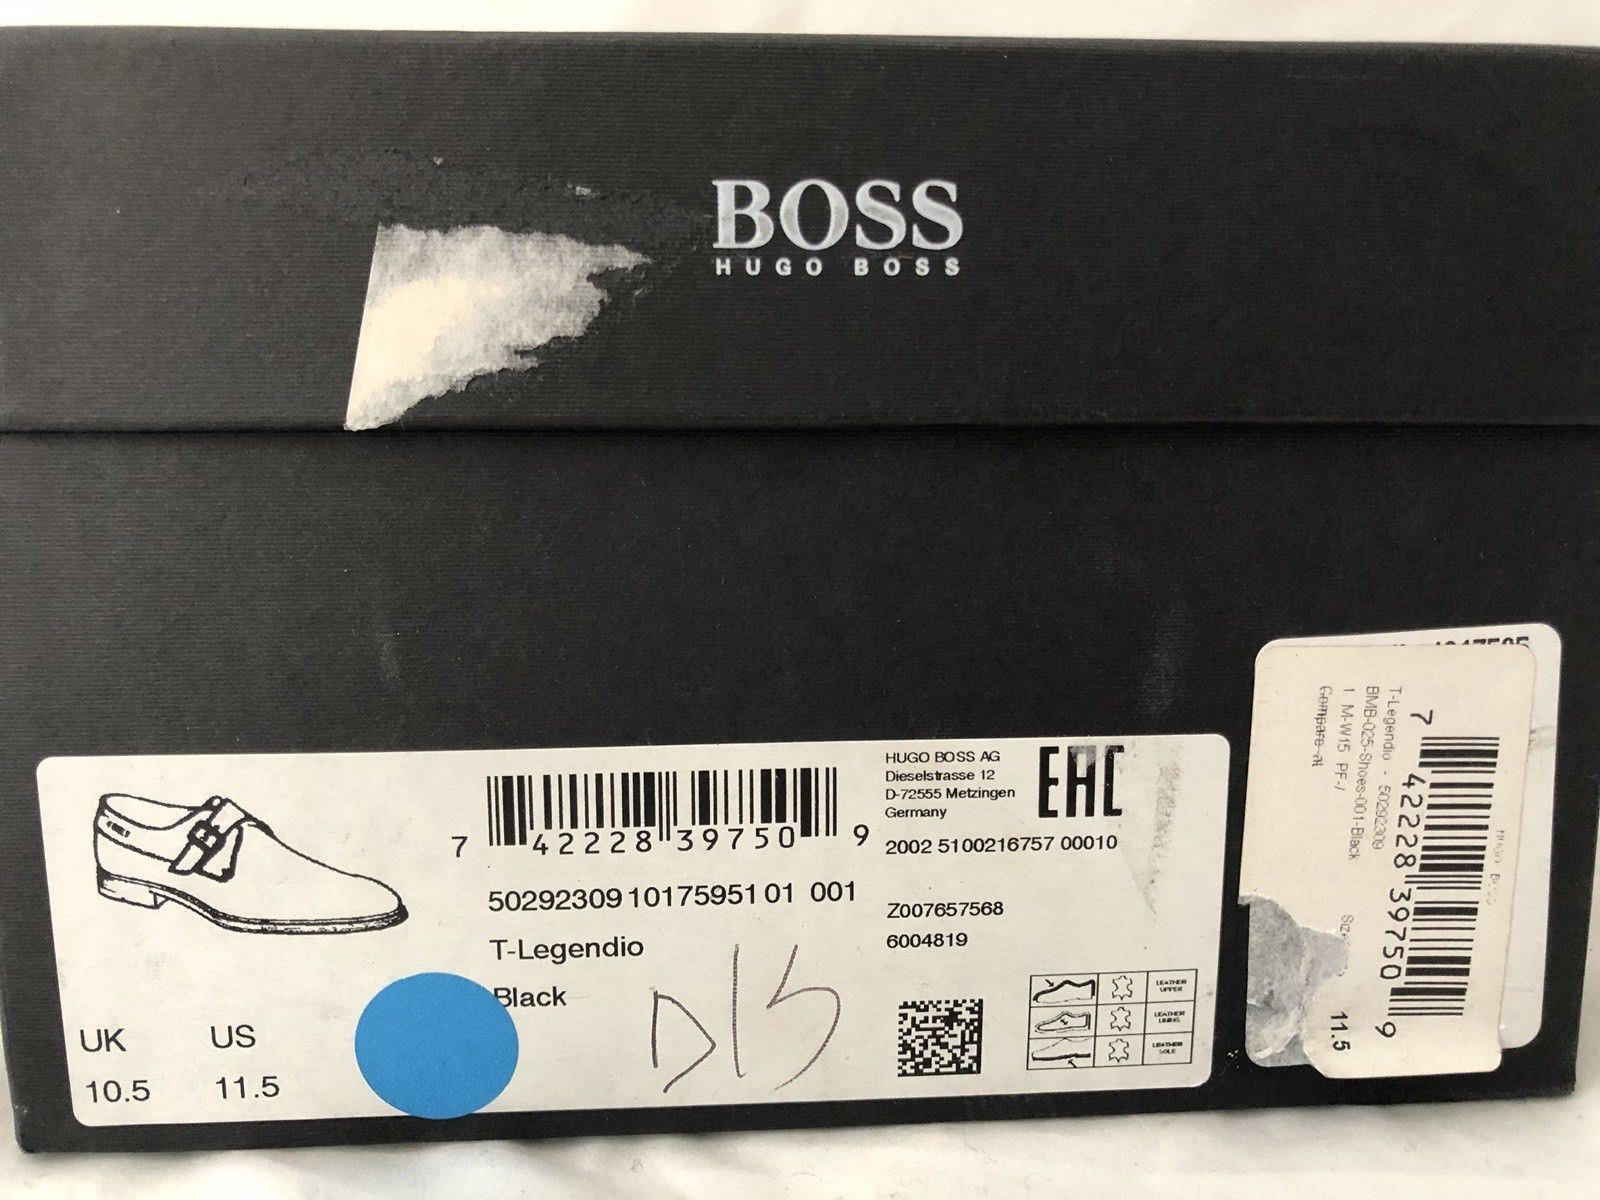 NIB $645 Boss Hugo Boss T-Legendio Tailored Mens Black Leather Shoes 11.5 US IT - BAYSUPERSTORE